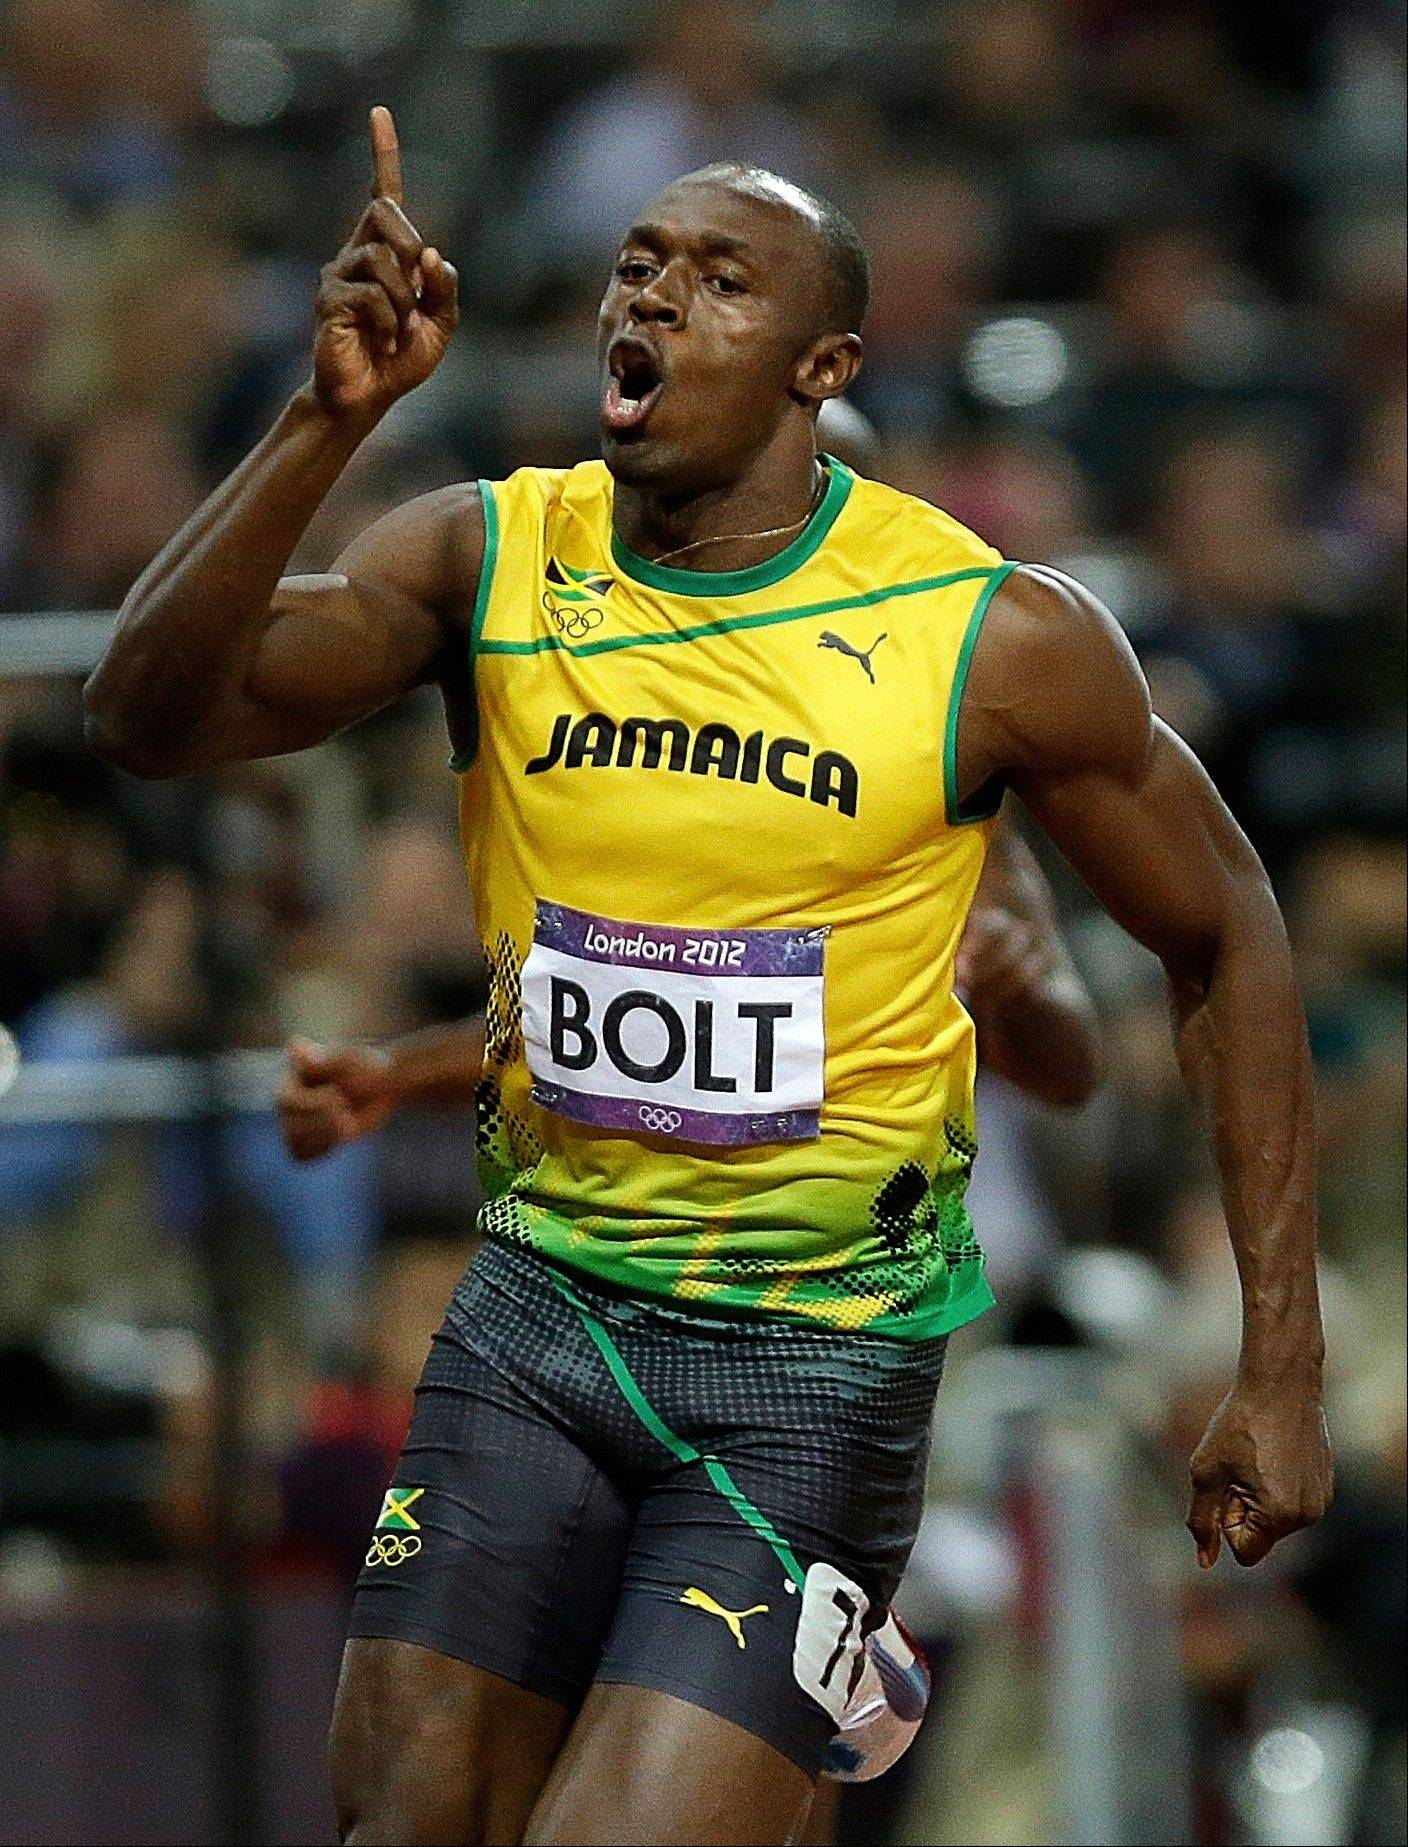 Jamaica's Usain Bolt celebrates Sunday after winning the men's 100-meter final race at Olympic Stadium in London.